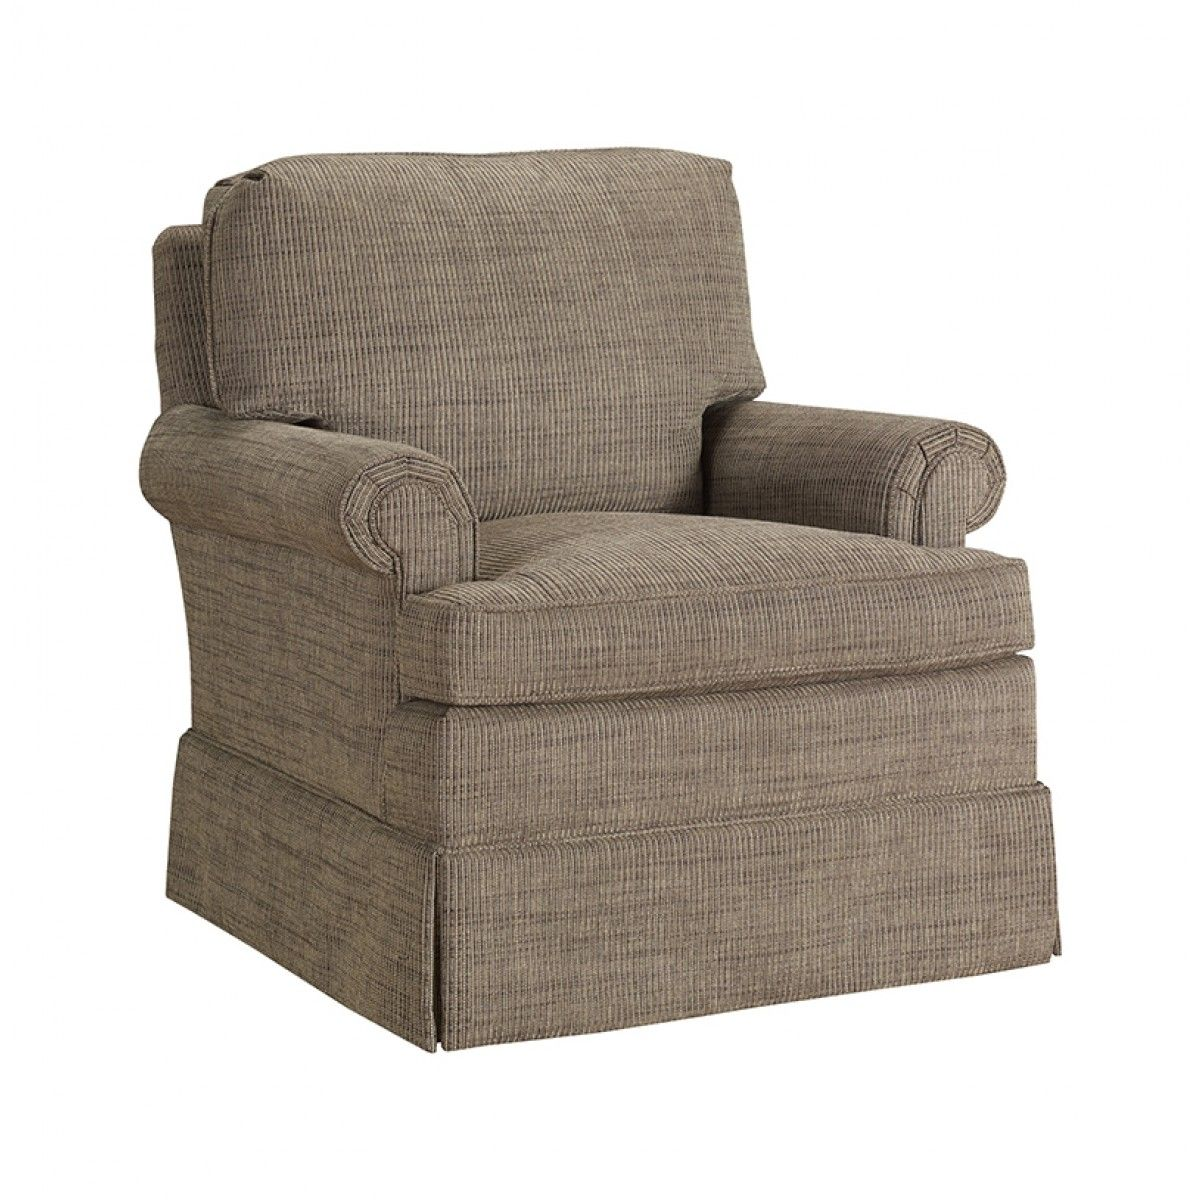 Hickory Chair Upholstery Suffolk Swivel Glider Hickory chair